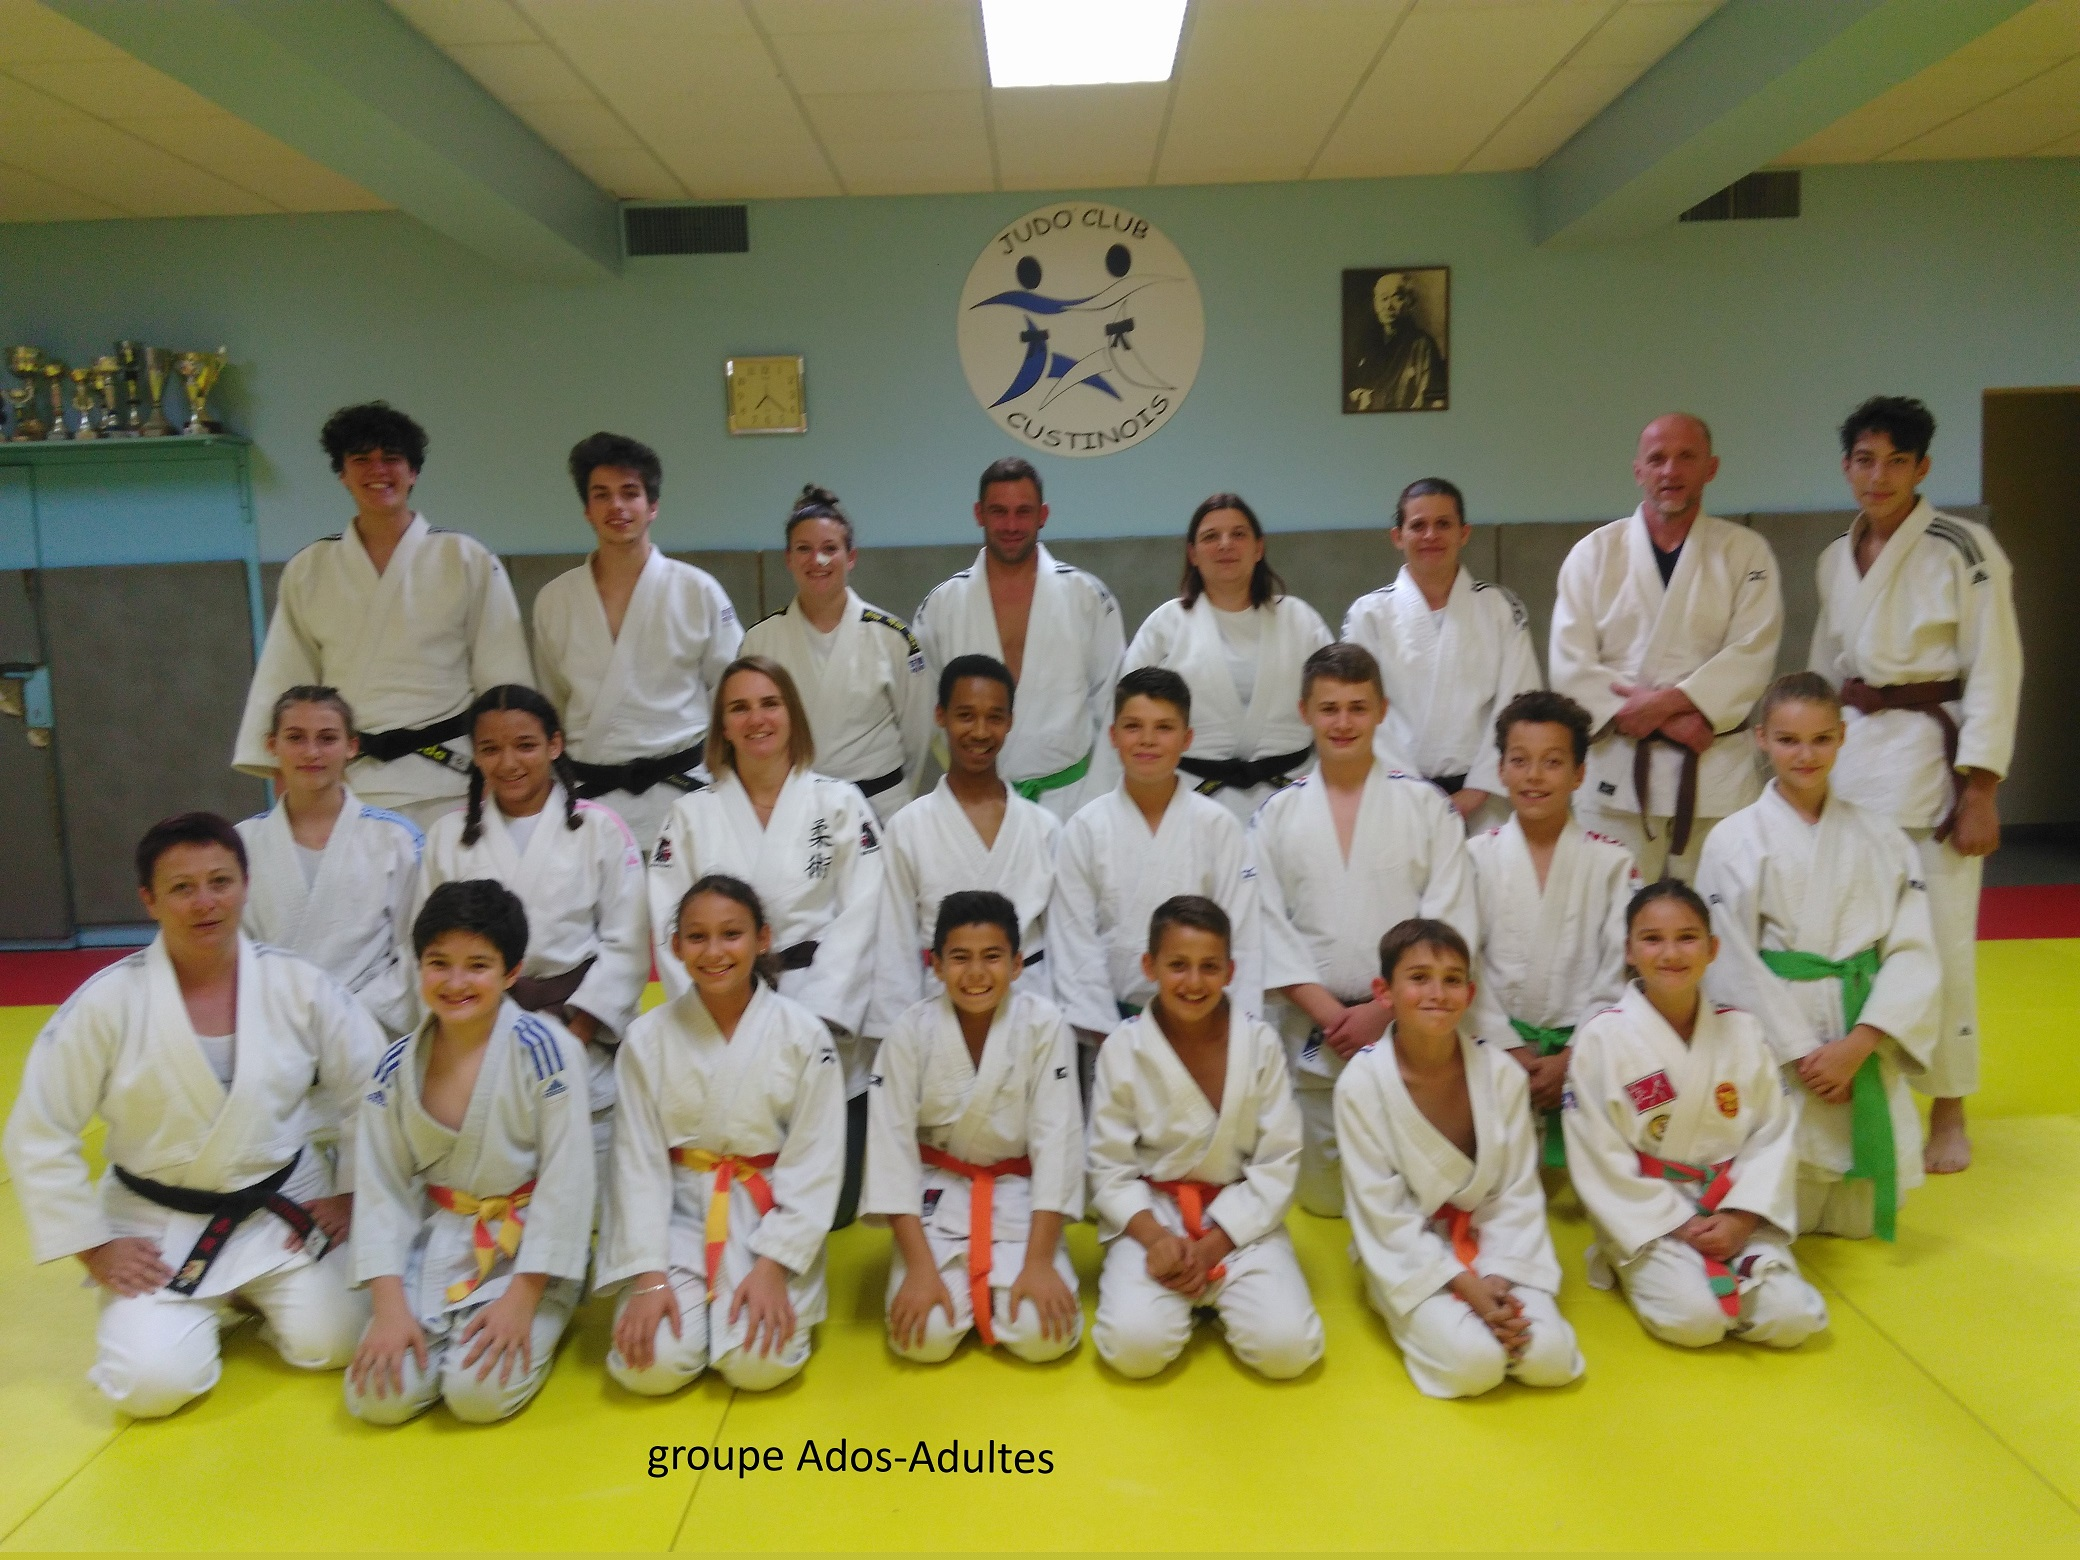 JUDO_Photo-N3-Groupe-Ados-Adultes-red